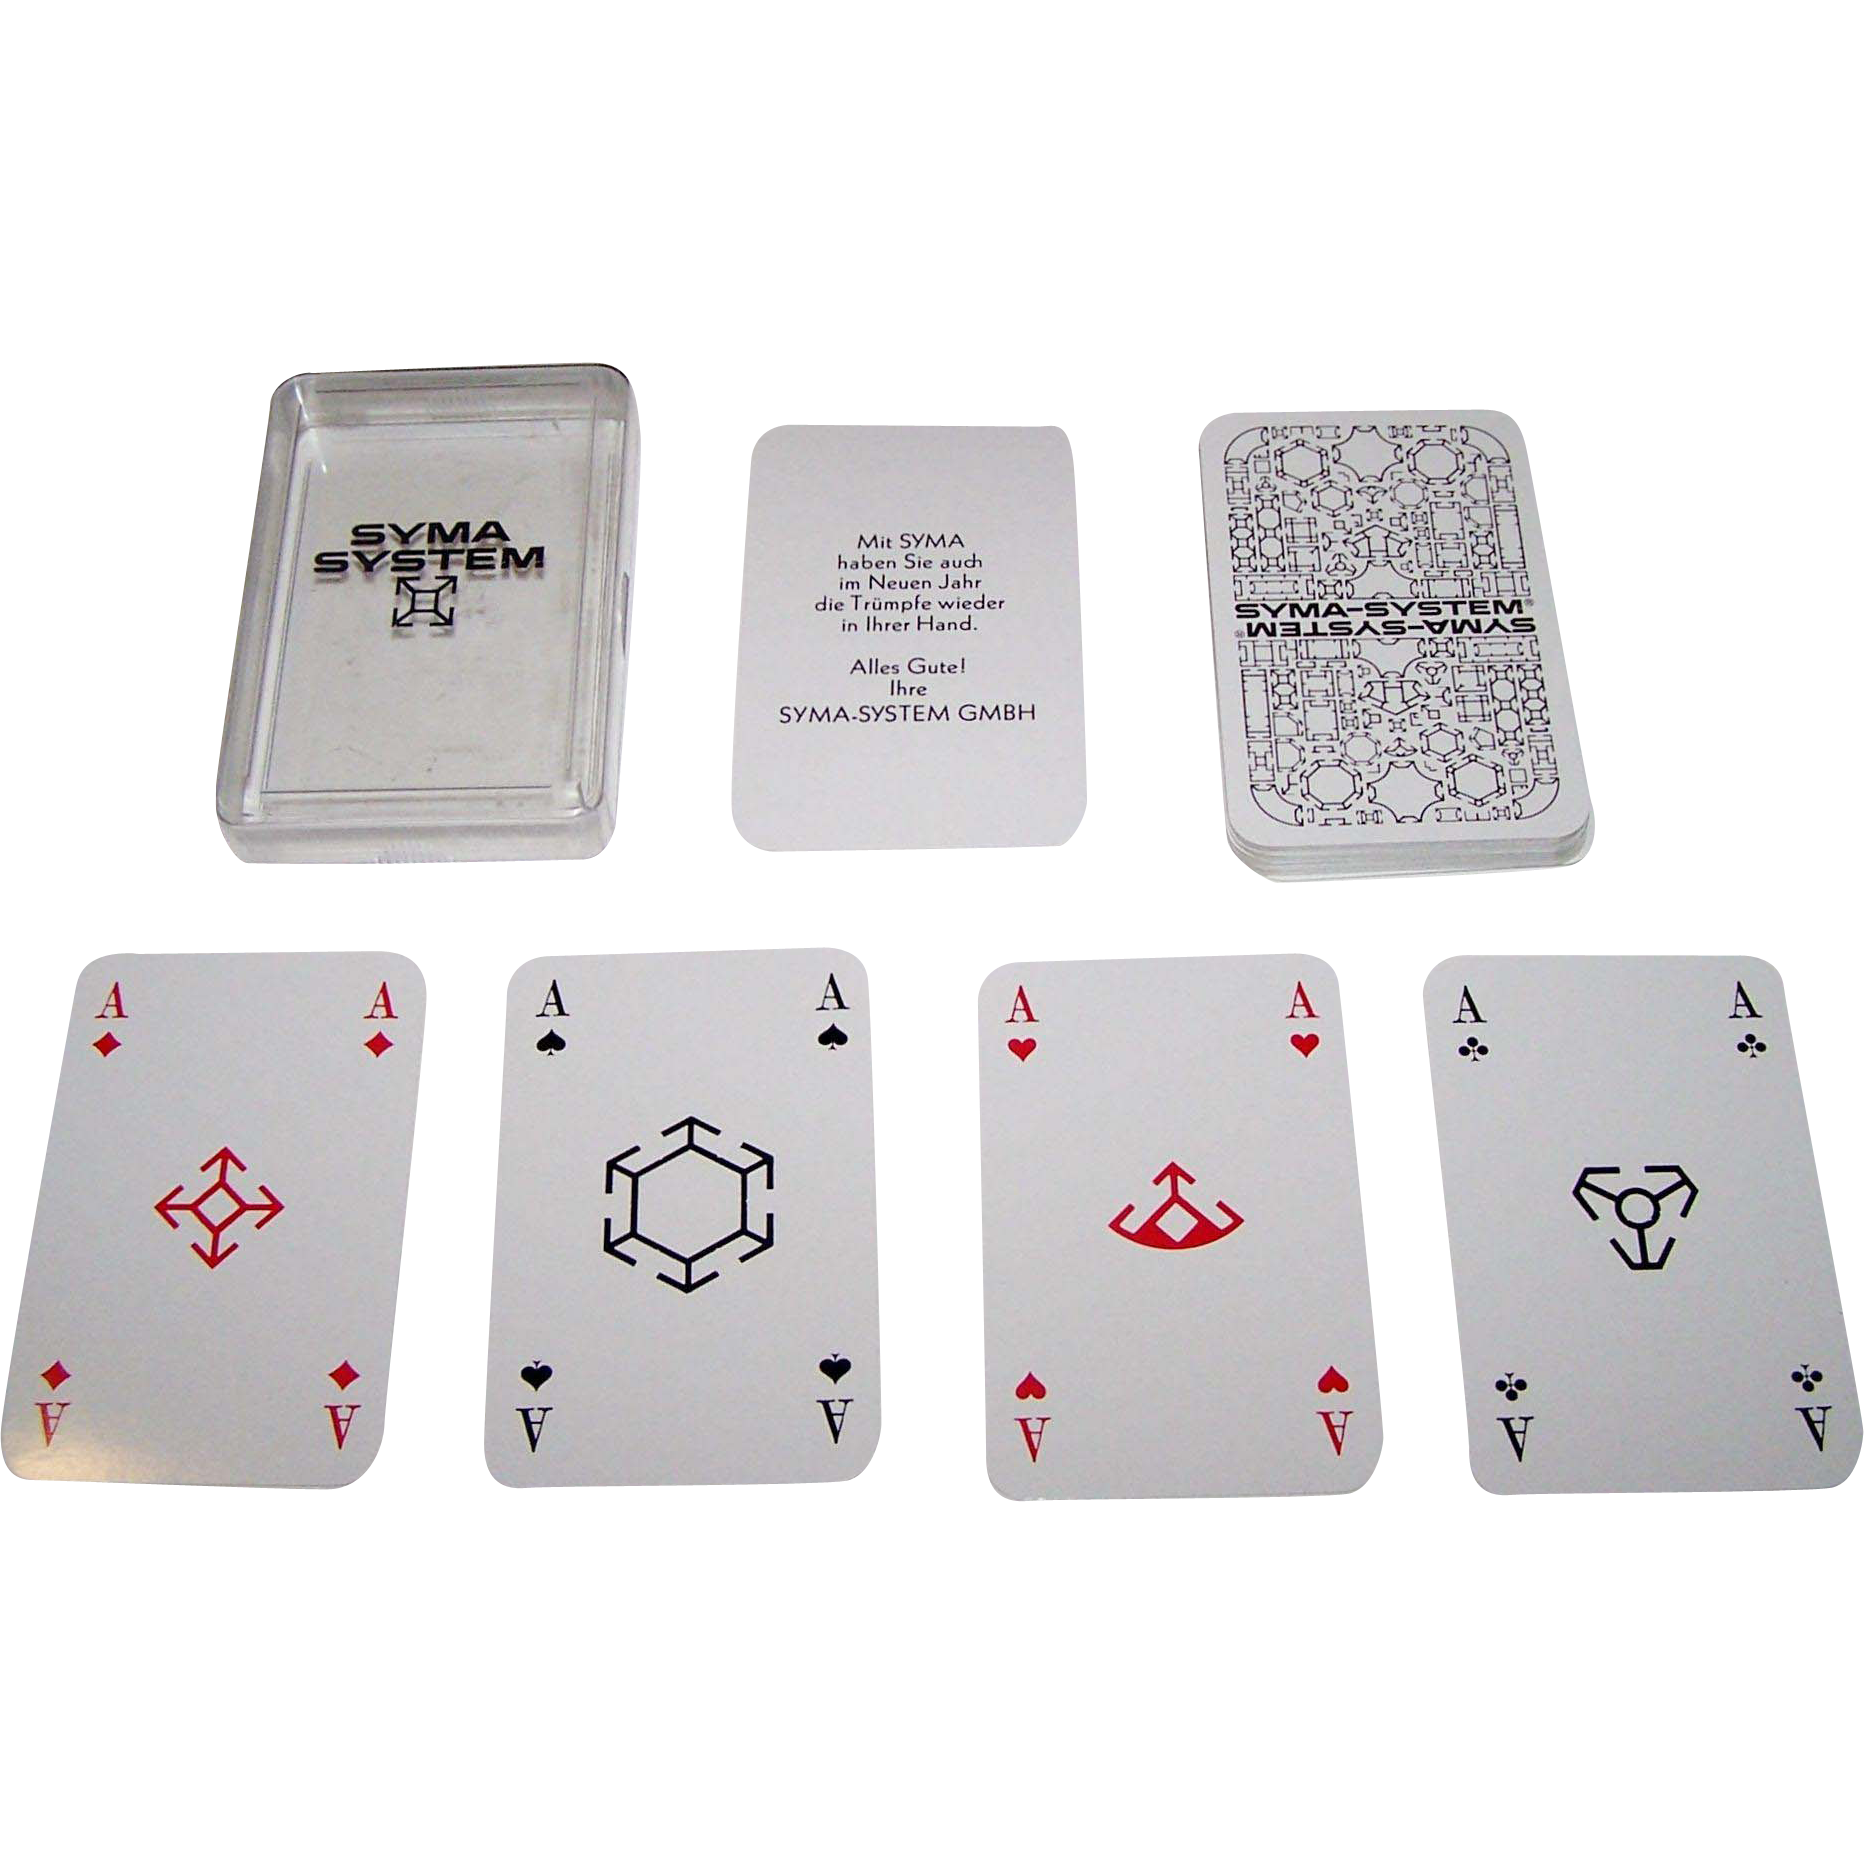 "ASS ""Syma-System"" Skat Playing Cards, ""Semi-Transformation"" Features, Modular Pips, c.1973"